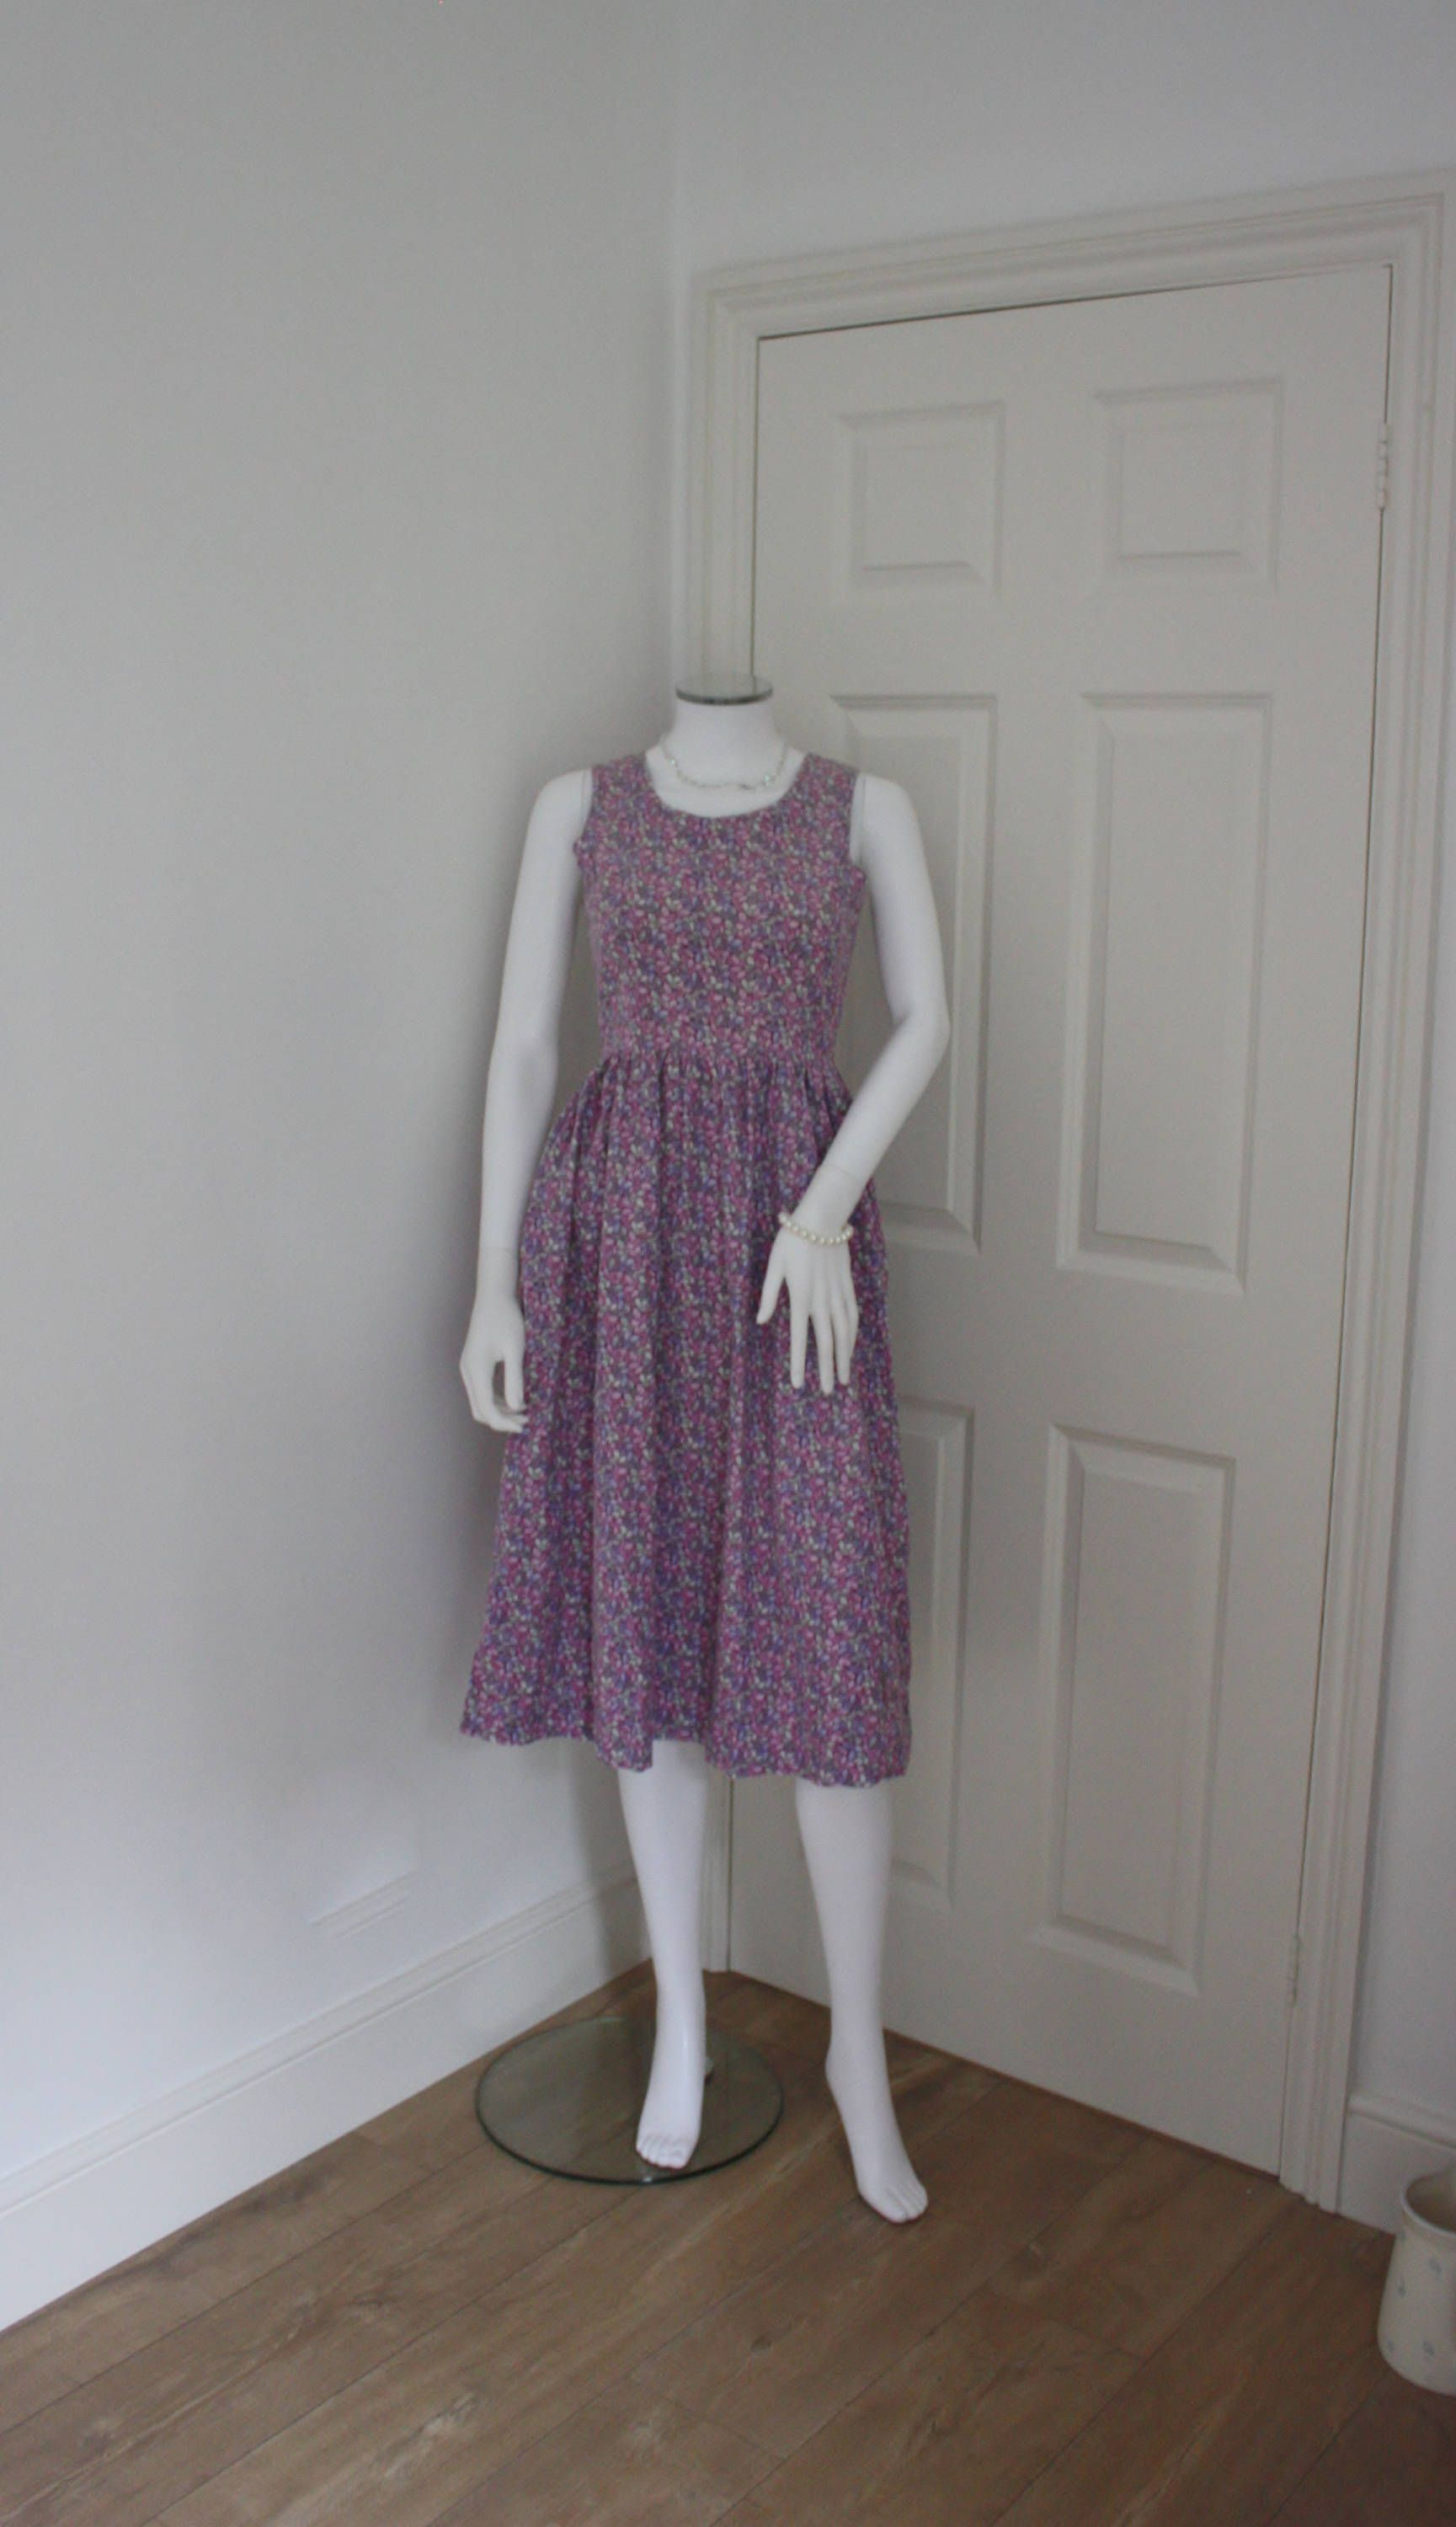 17ea162ae51c Laura Ashley cord dress - needle cord - vintage corduroy midi dress -  pinafore style - Made in Carno Wales - 80's Laura Ashley by  GoingAroundAgain on Etsy